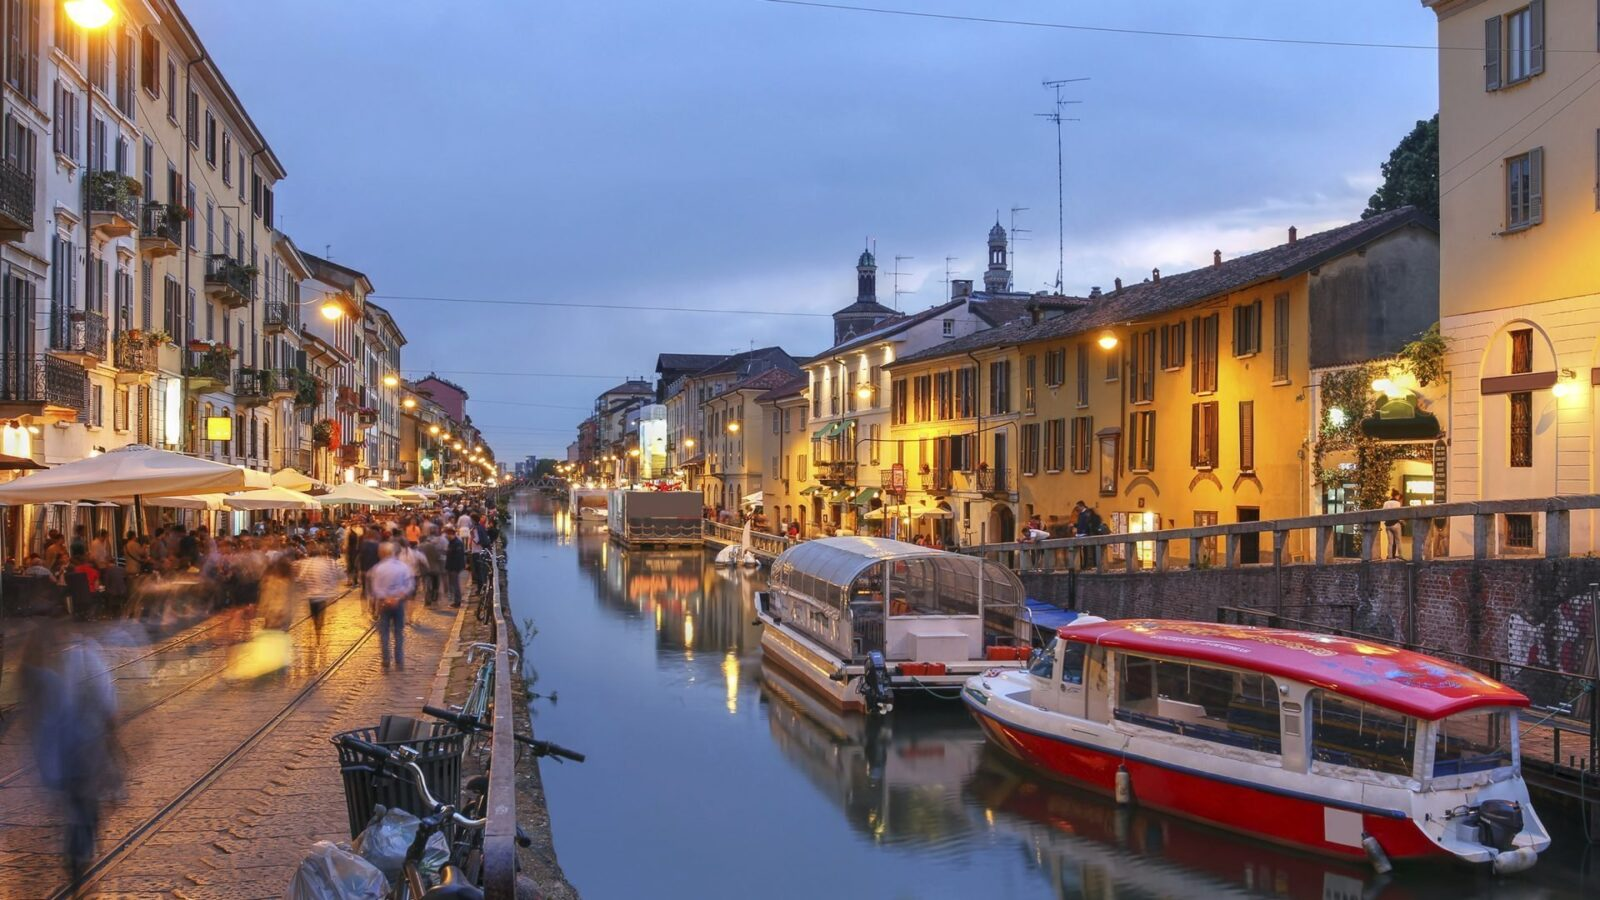 Walk Along the Naviglio Grande